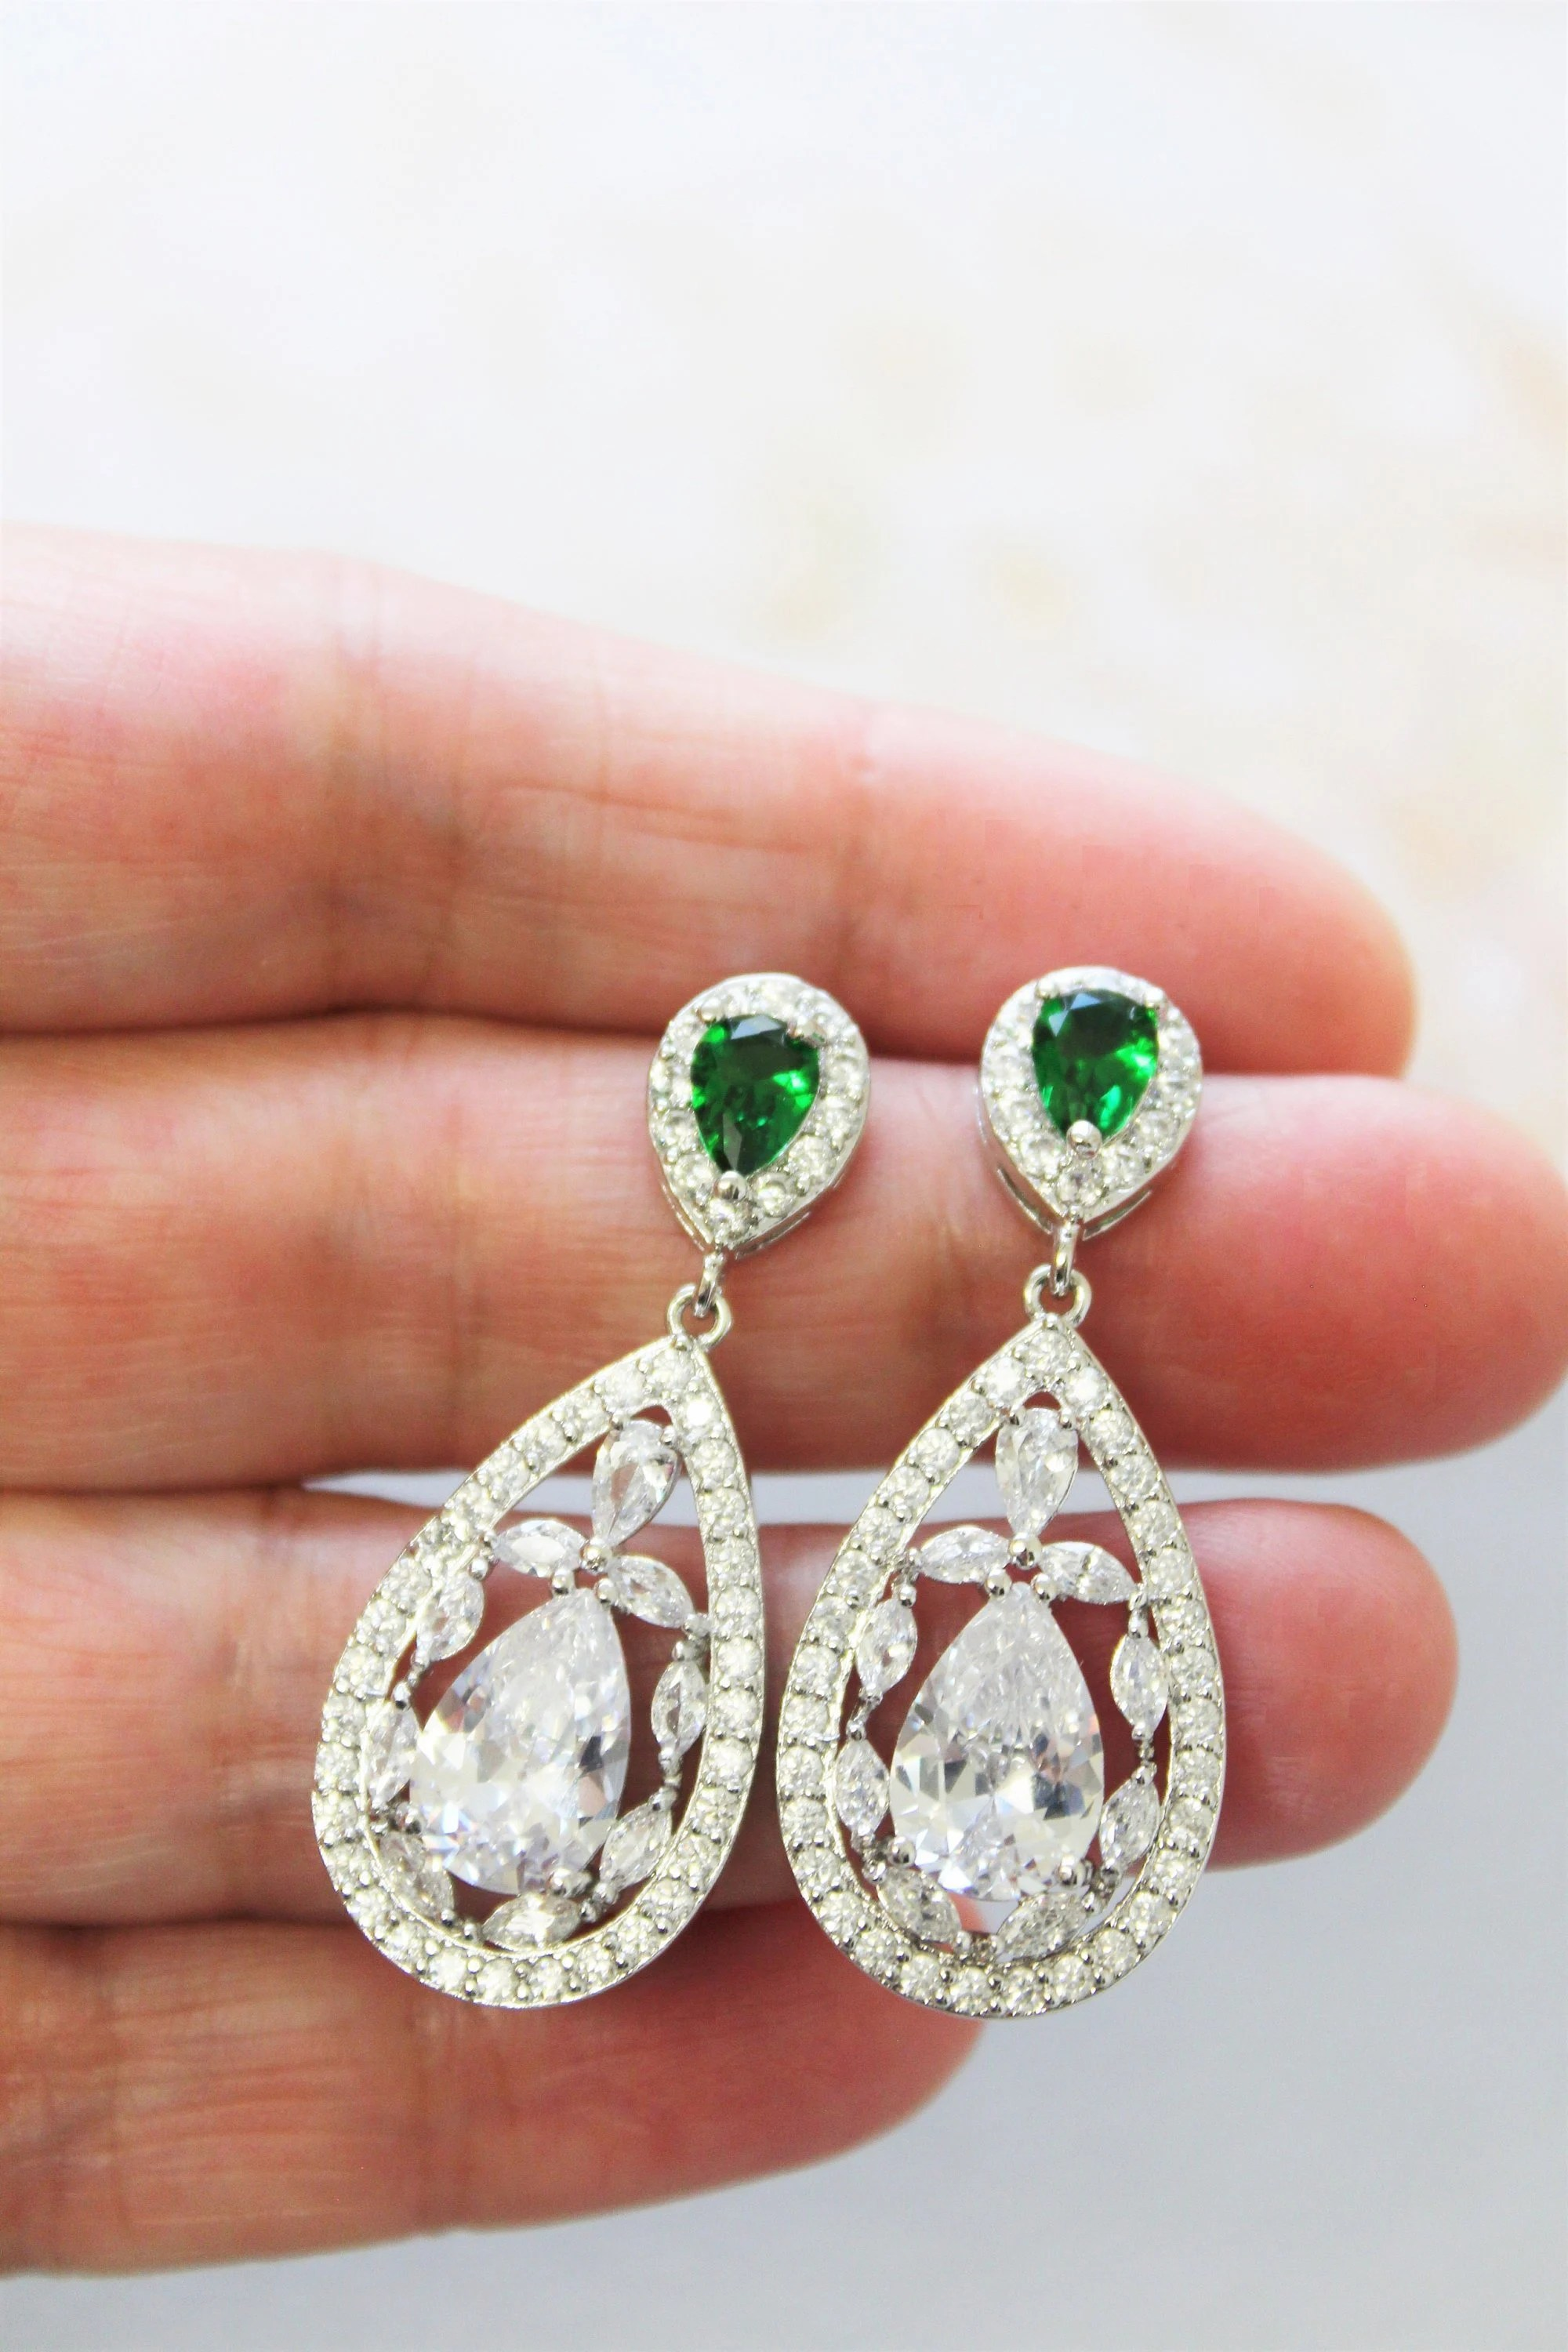 Art Deco Style Earrings Uk Art Deco Earrings Green Bridal Earrings Wedding Jewelry Silver Crystal Earrings Zircon Earrings Emerald Earrings Uk